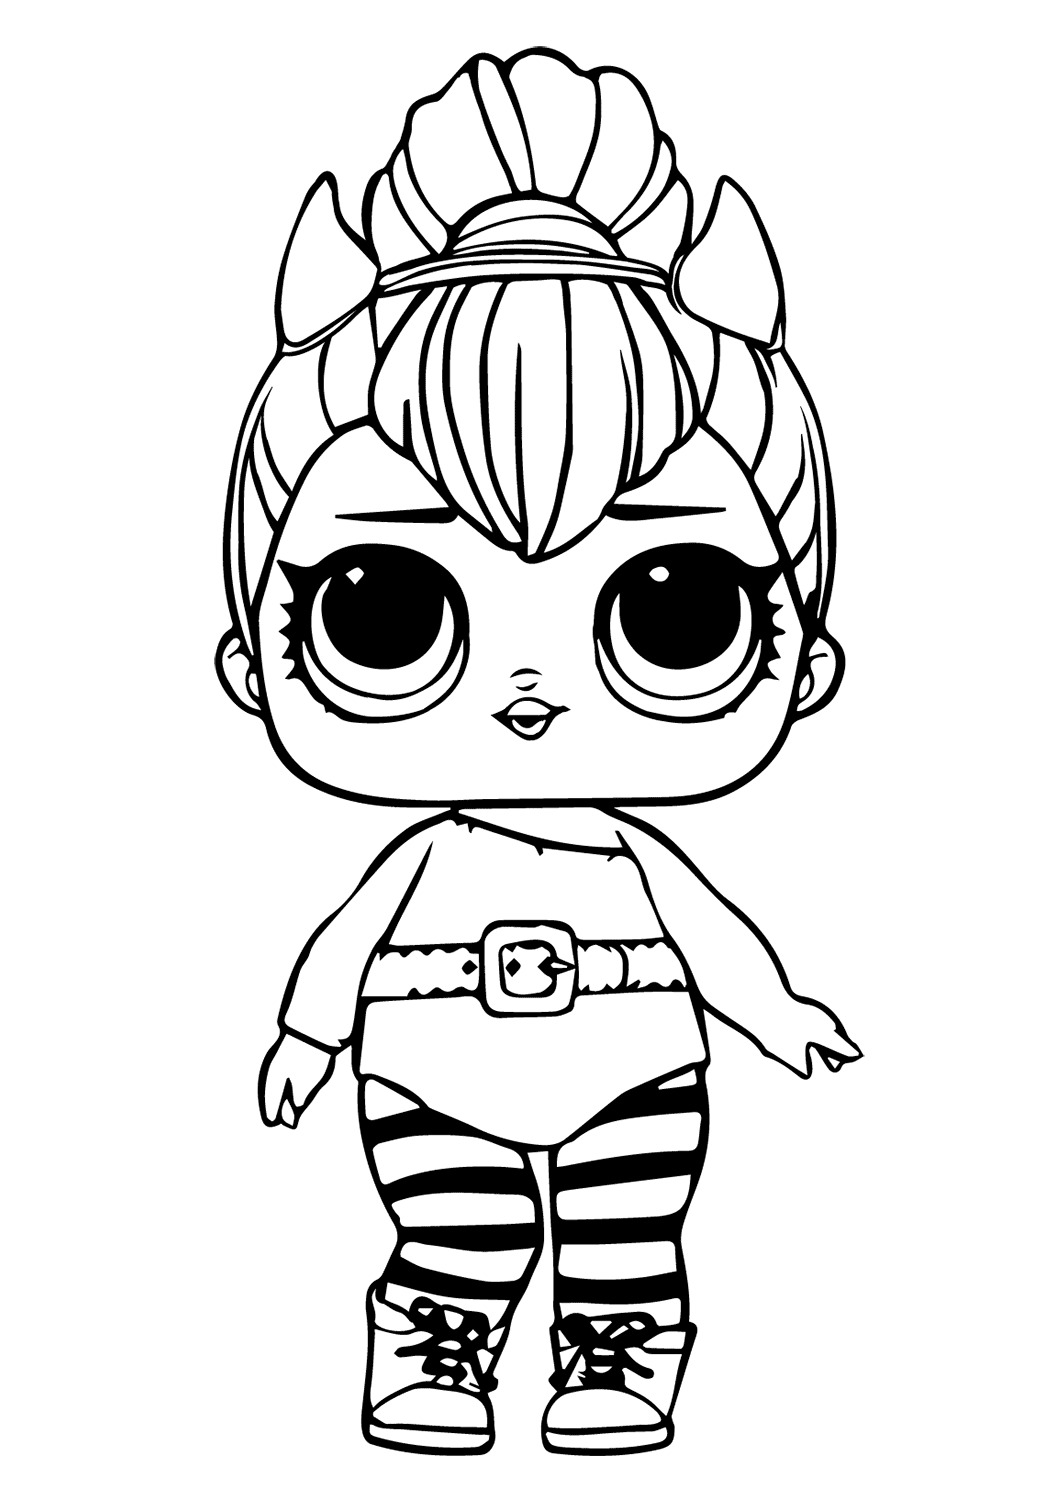 Lol Suprise Doll Spice Coloring Page